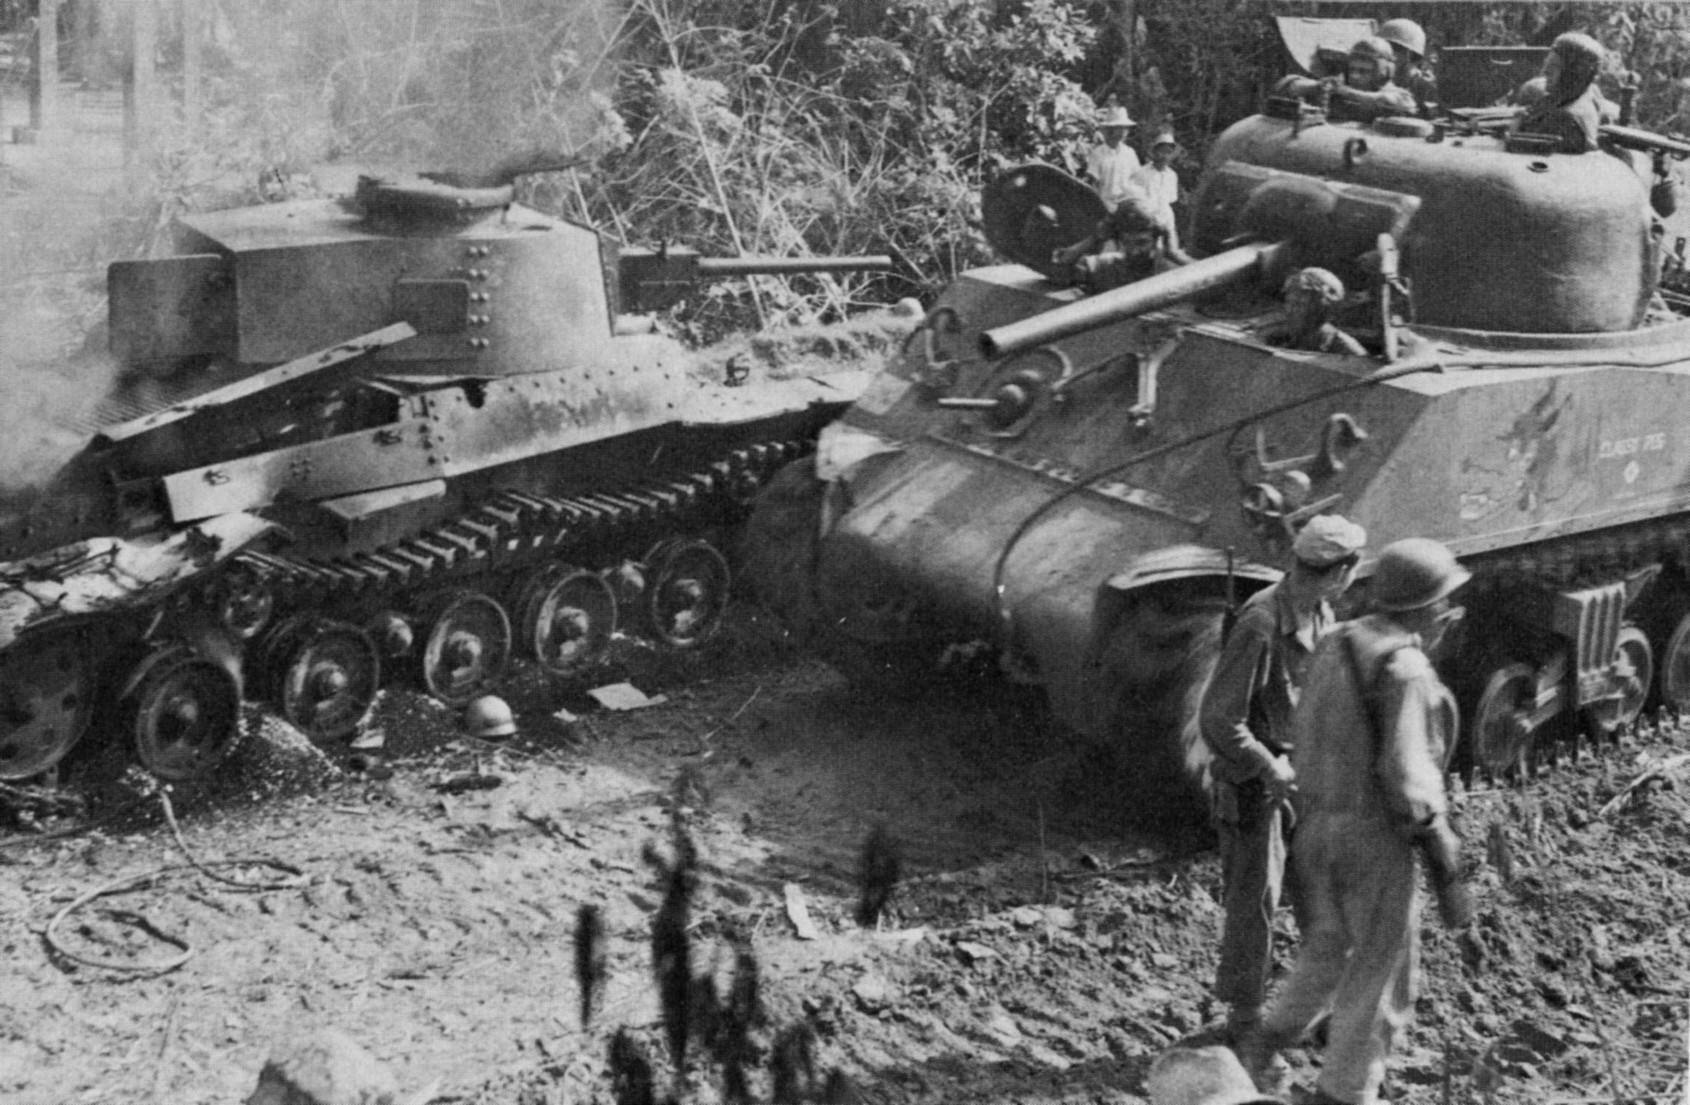 Classy-Peg-passing-destroyed-Japanese-Shinhoto-Chiha-tank-on-Luzon-in-the-Phillipines-17-Jan-1945 (1)